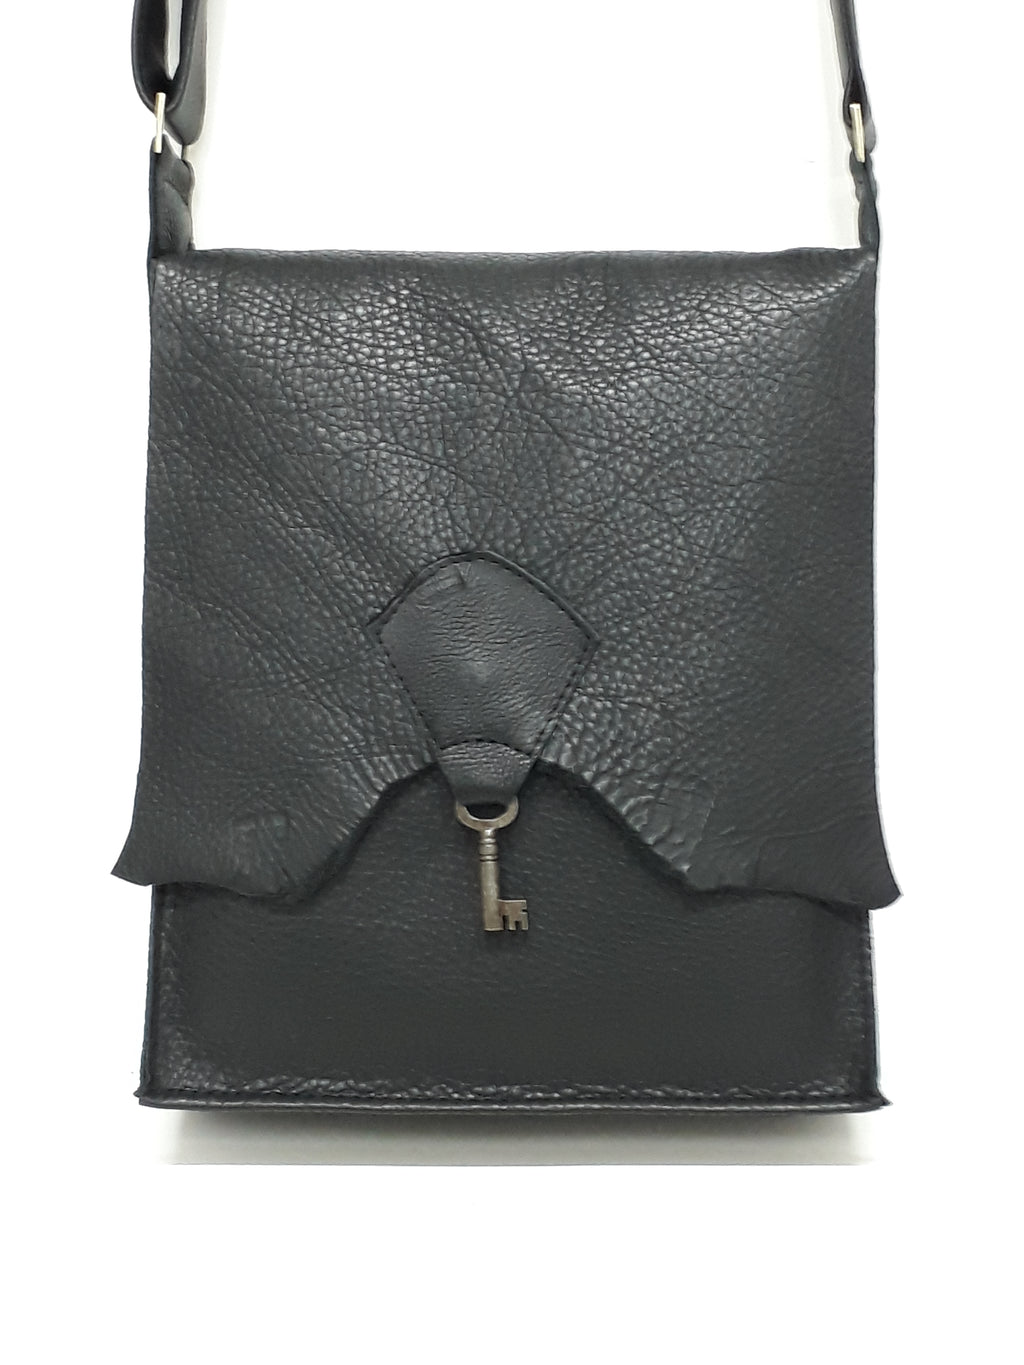 Raw Edge Leather Bag with Vintage Key Detail - Black - Coterie Leather Bags